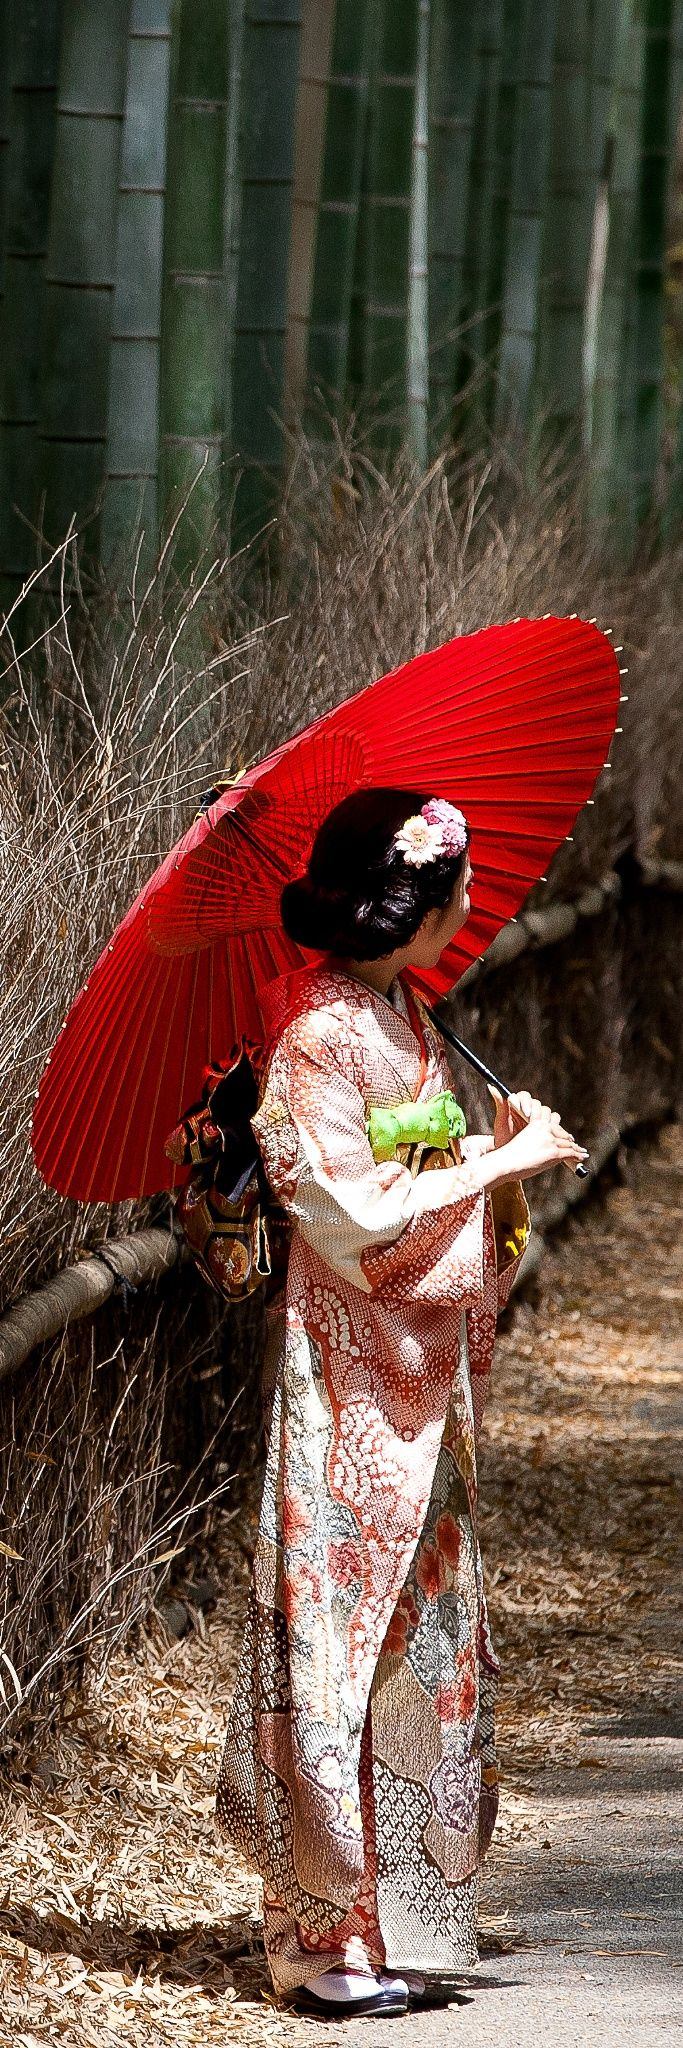 Bamboo Geisha - A random encounter with Japan's rare and dwindling Geishas. Arashiyama, Kyoto ~ by Kory Carpenter